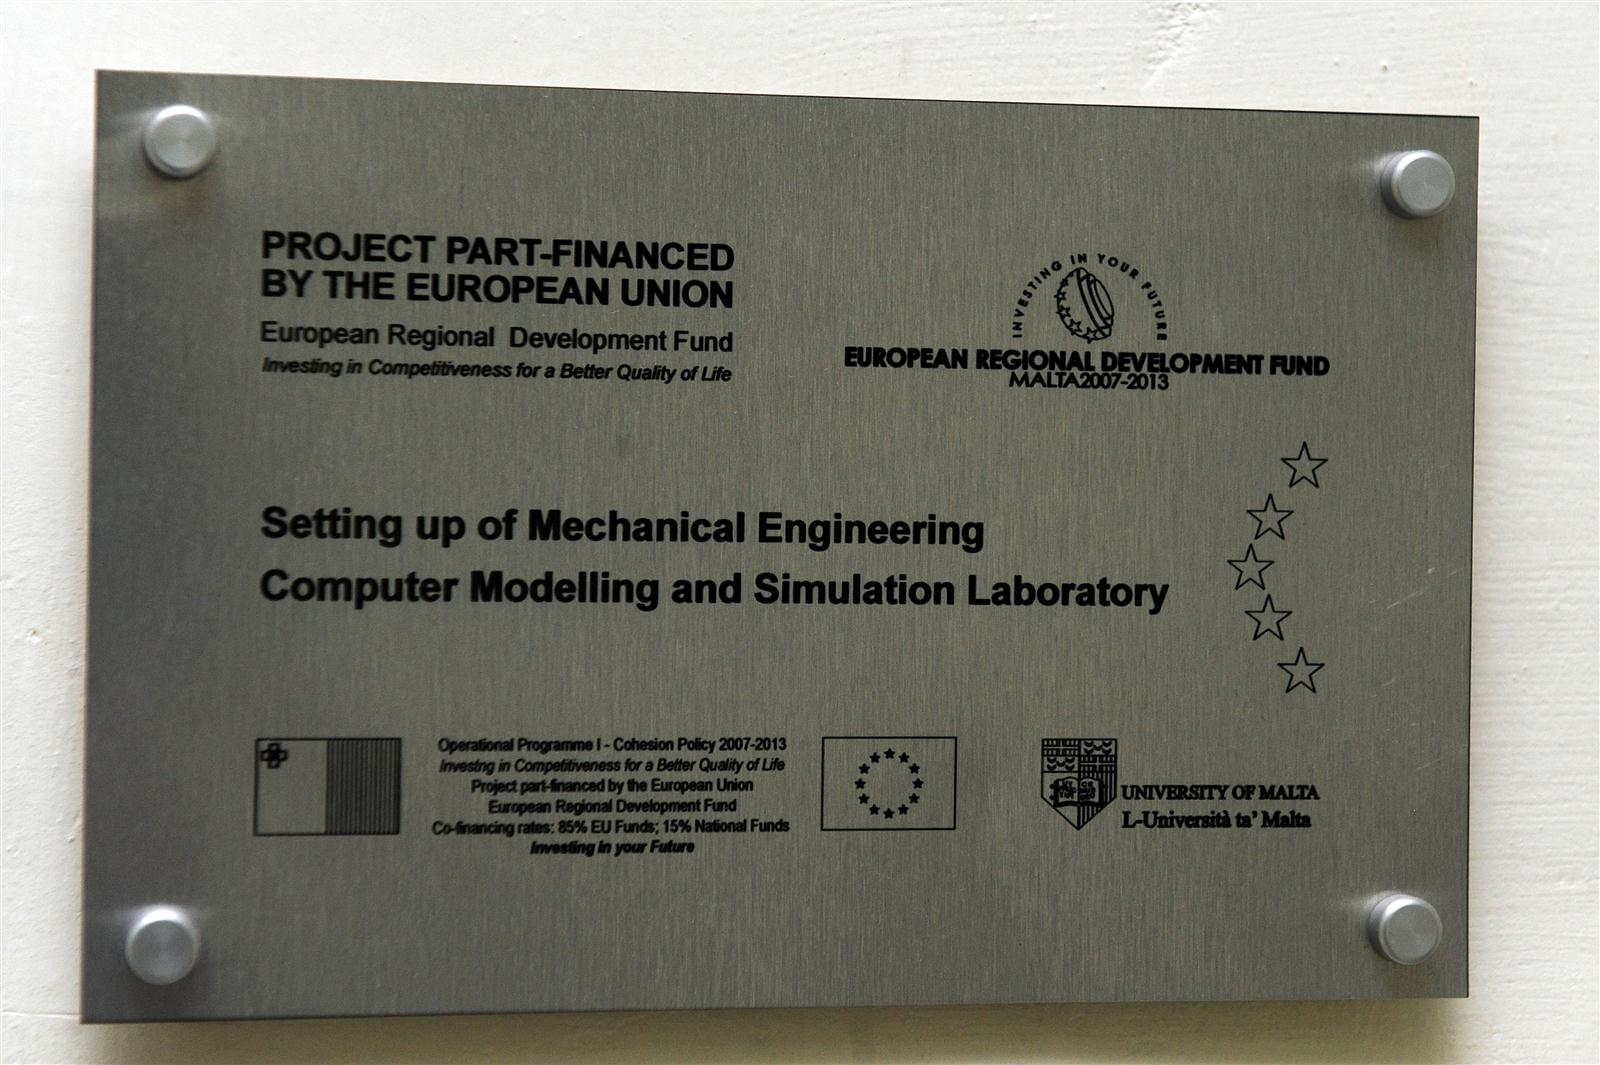 ERDF079: Setting up of Mechanical Engineering Computer Modelling and